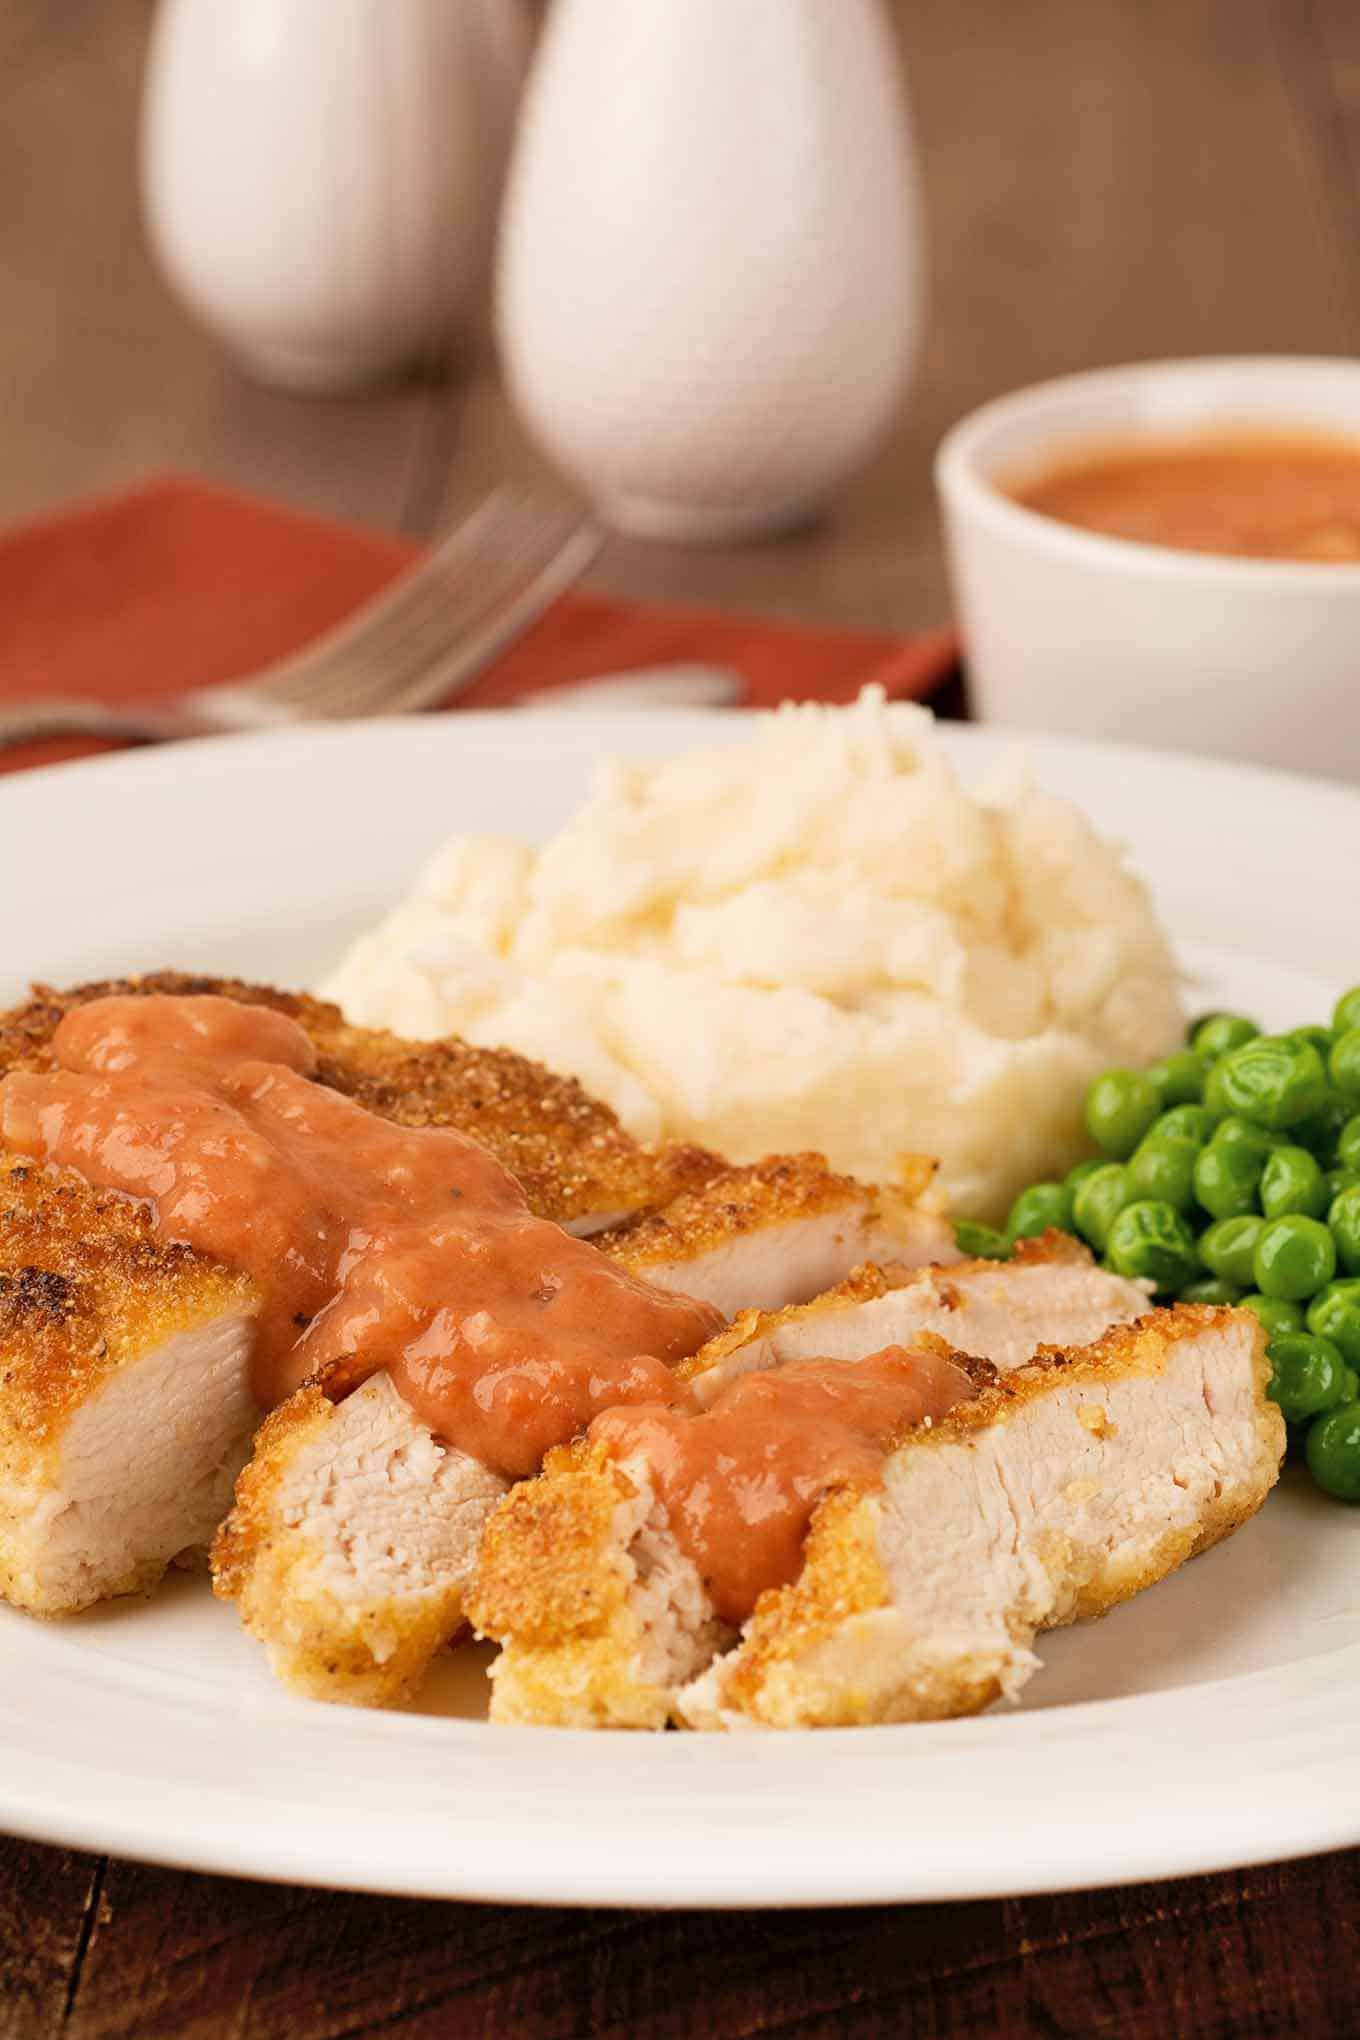 Plate with shallow-fried chicken breast, sliced and topped with Southern tomato gravy.